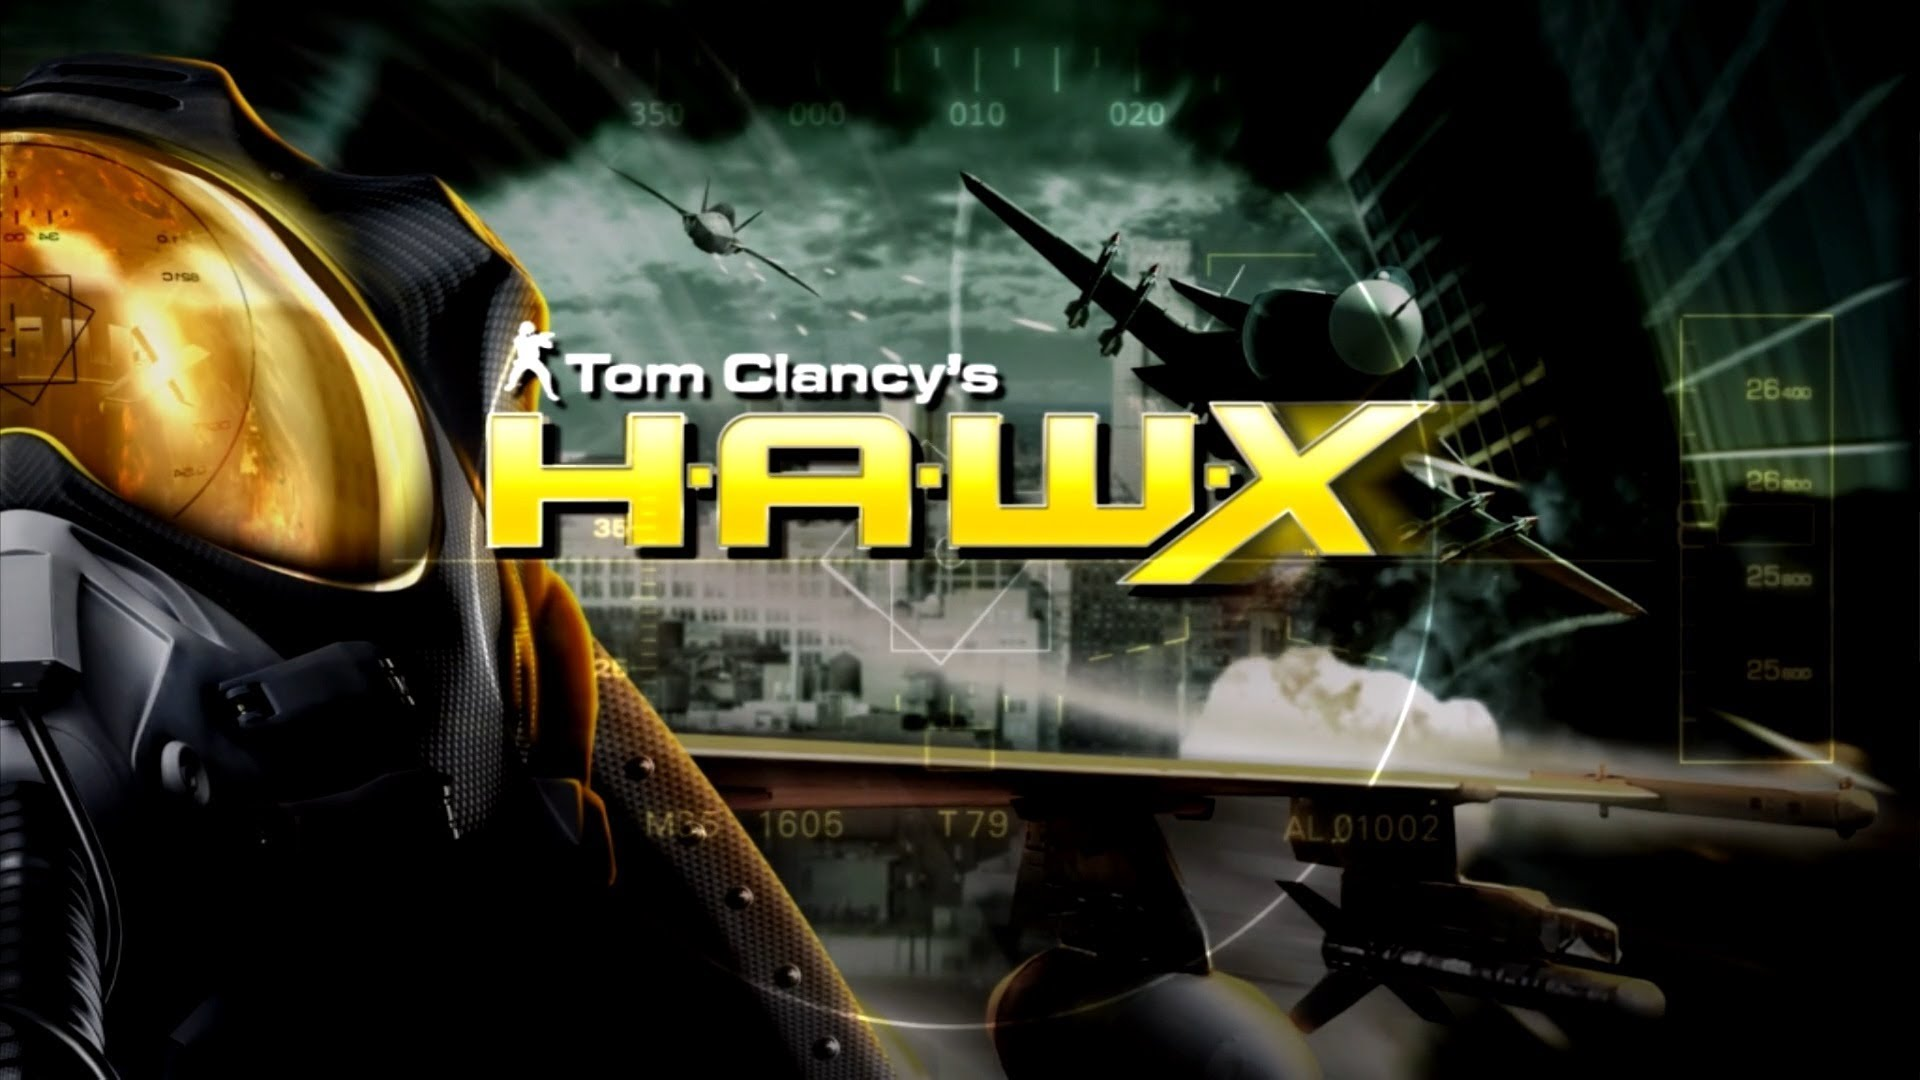 1920x1080 - Tom Clancy's H.A.W.X HD Wallpapers 1